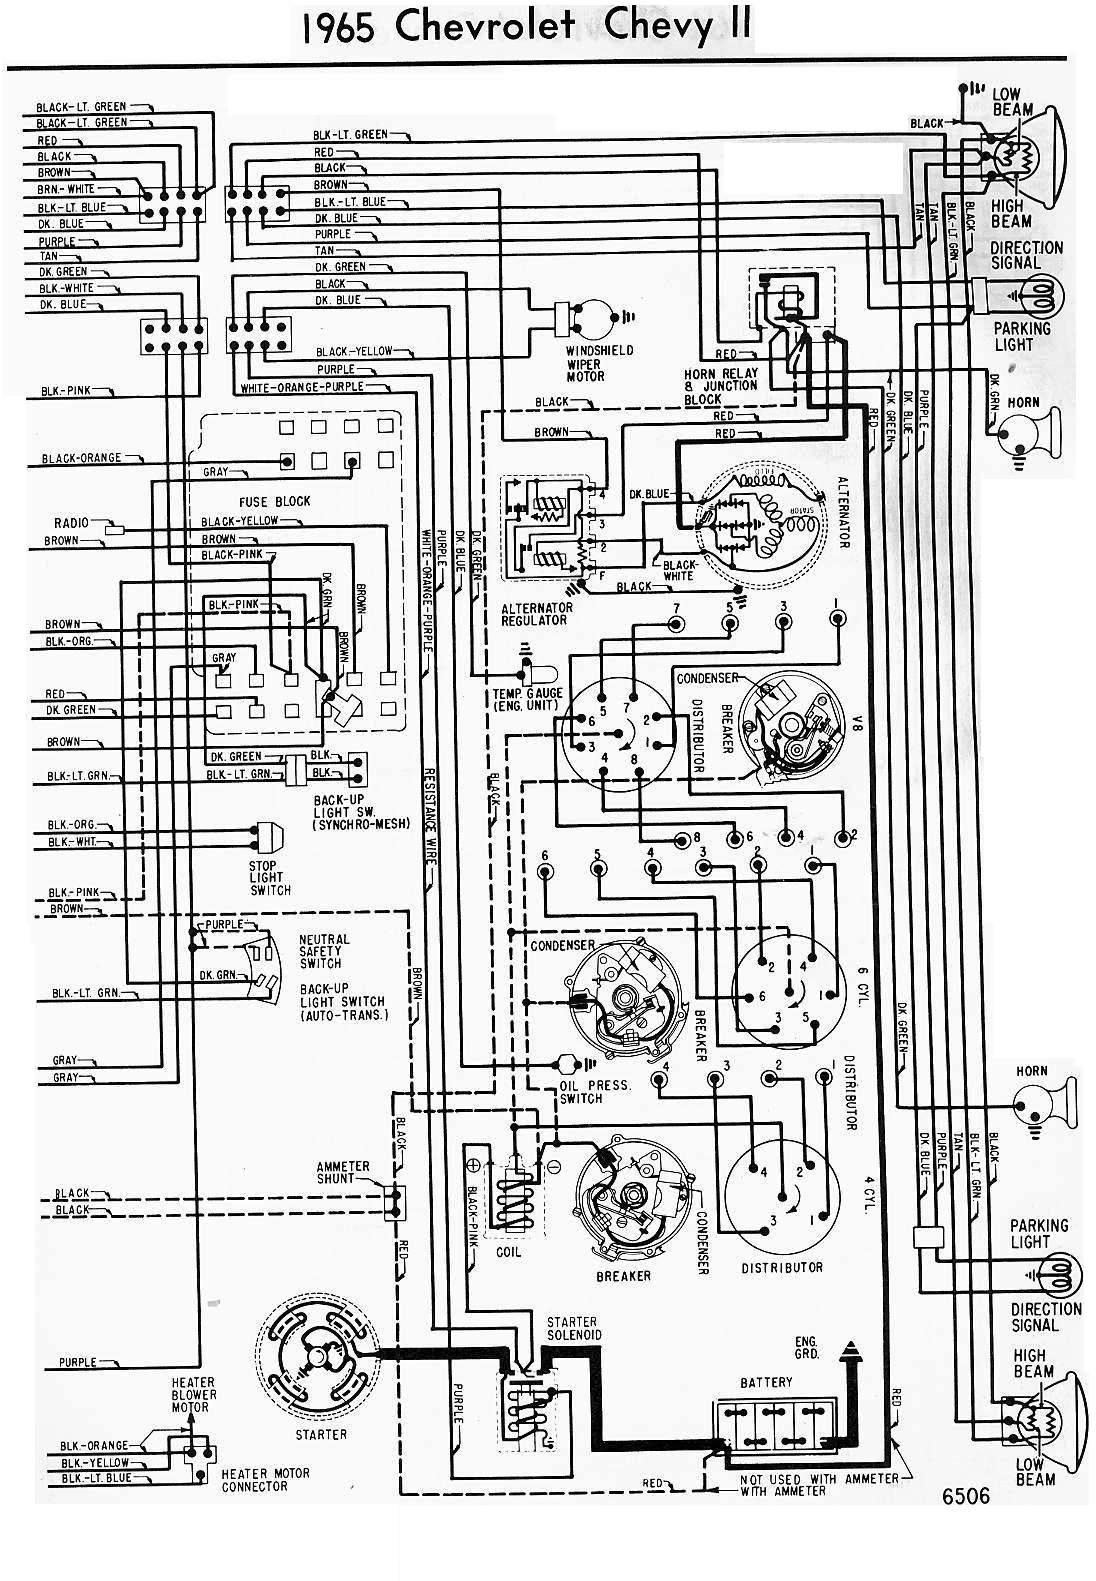 1965 chevy wiring diagram GwtSdvU diagrams chevy starter wiring diagram chevy starter wiring 1965 chevy c10 wiring diagram at gsmportal.co